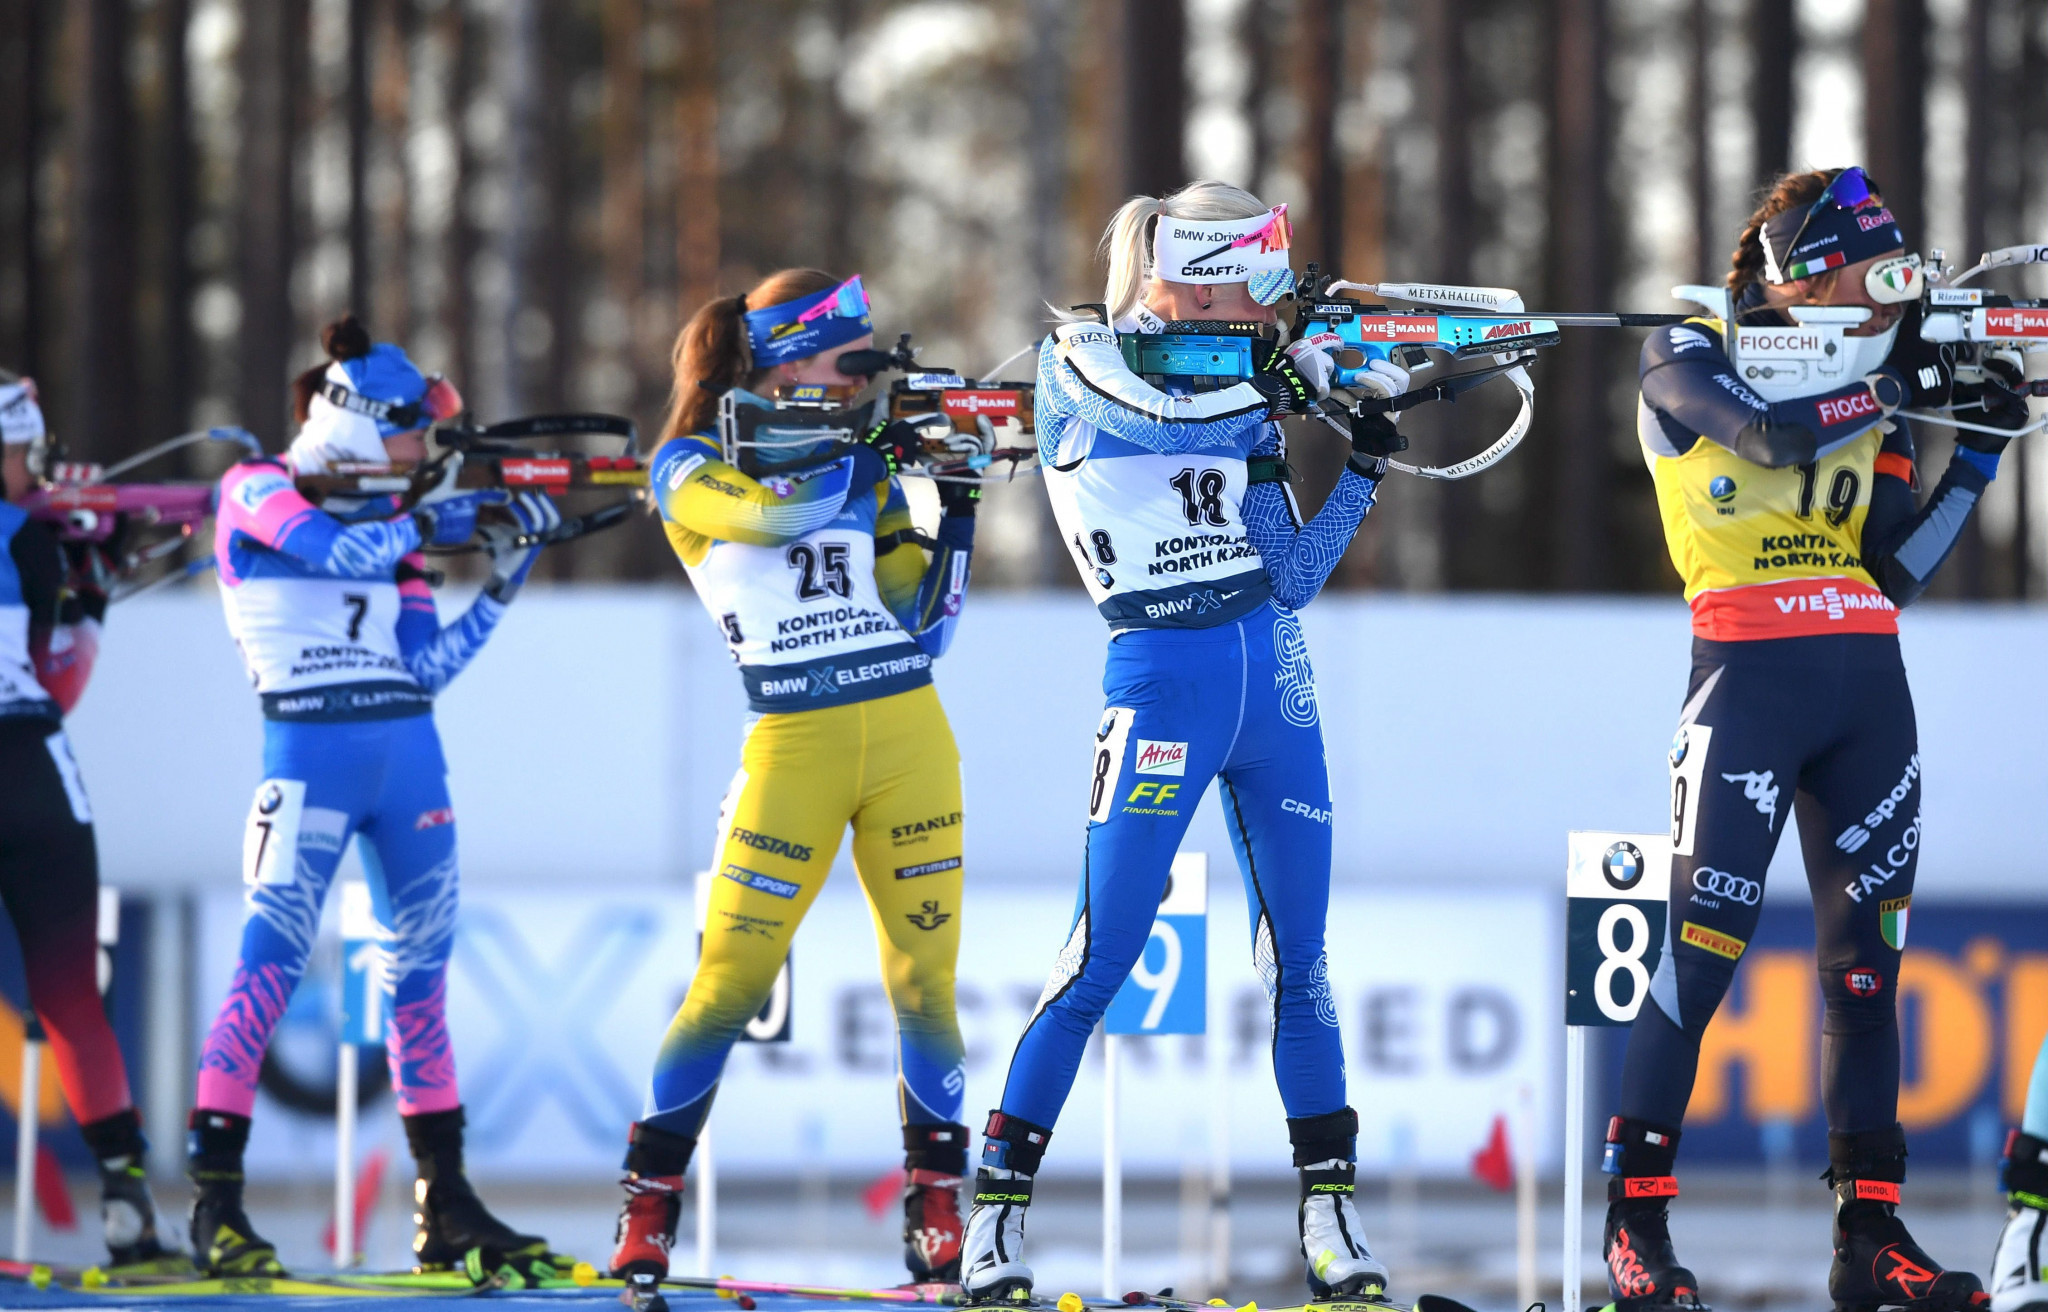 Fans completed a survey on spectator experience in biathlon ©Getty Images